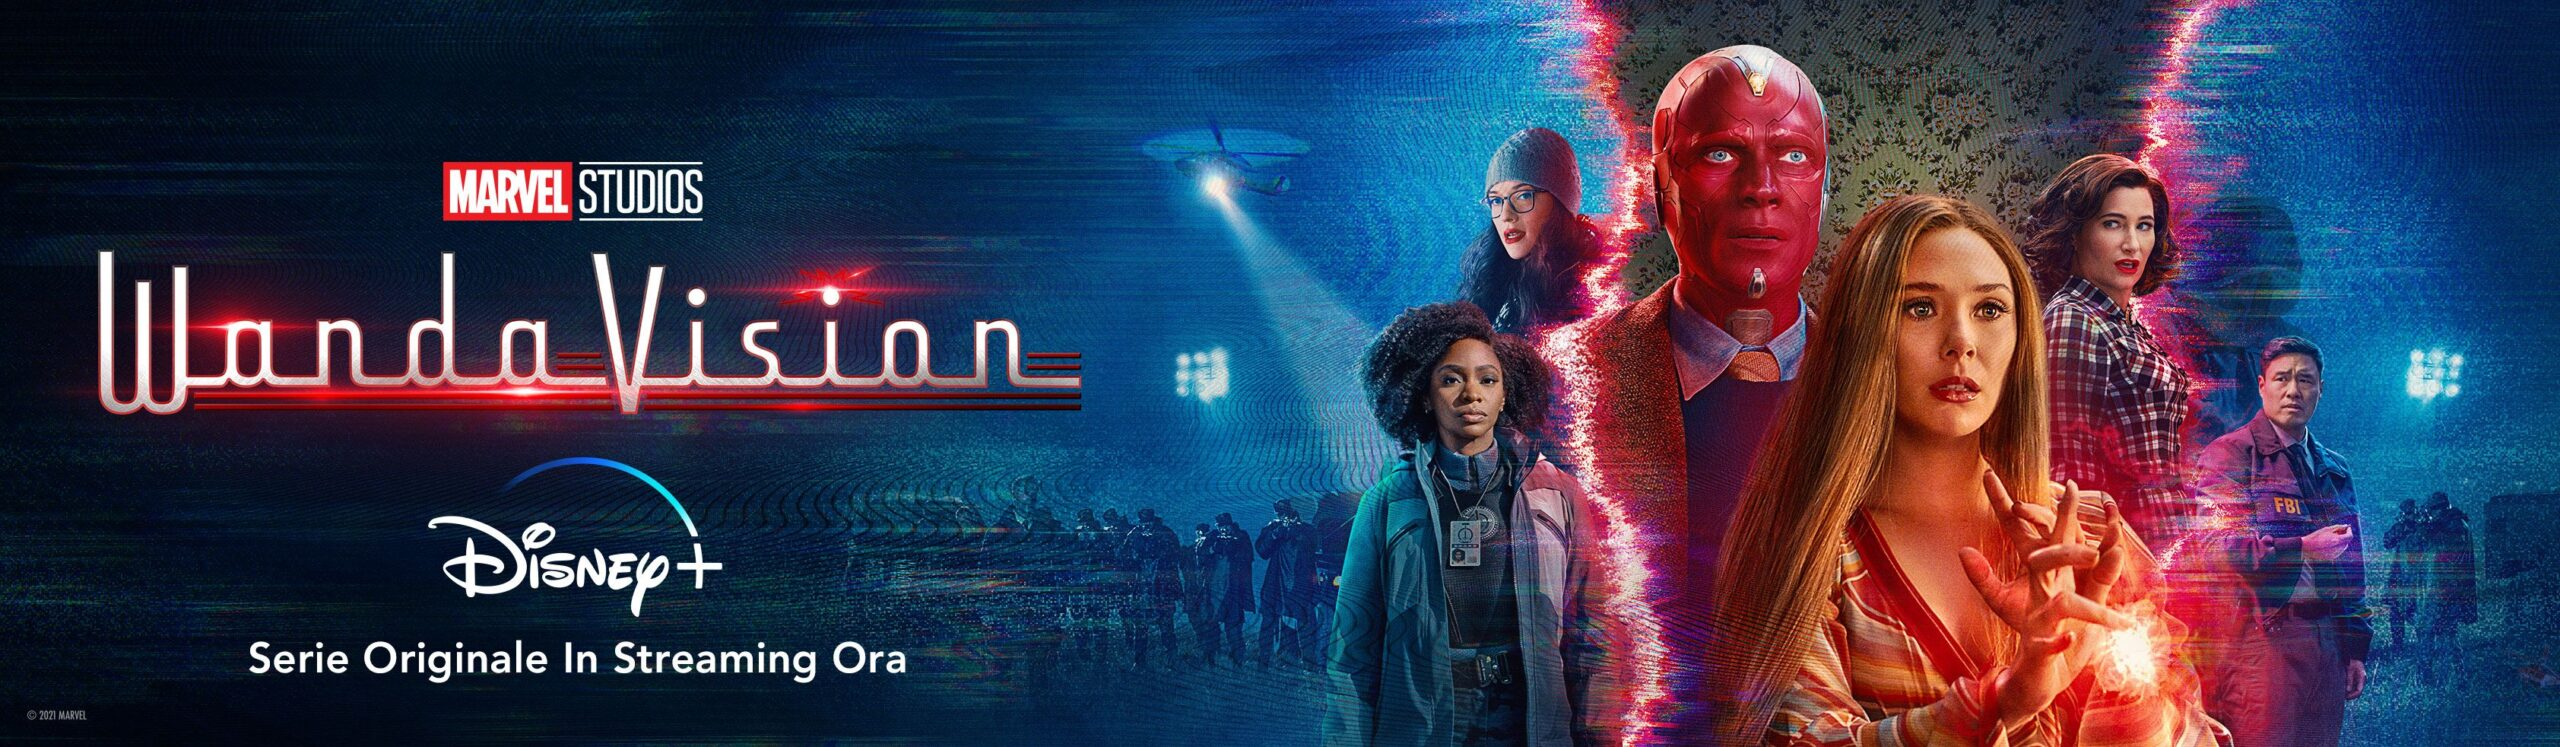 Wandavision: Disponibili il nuovissimo trailer e la key art dell'episodio 1×05